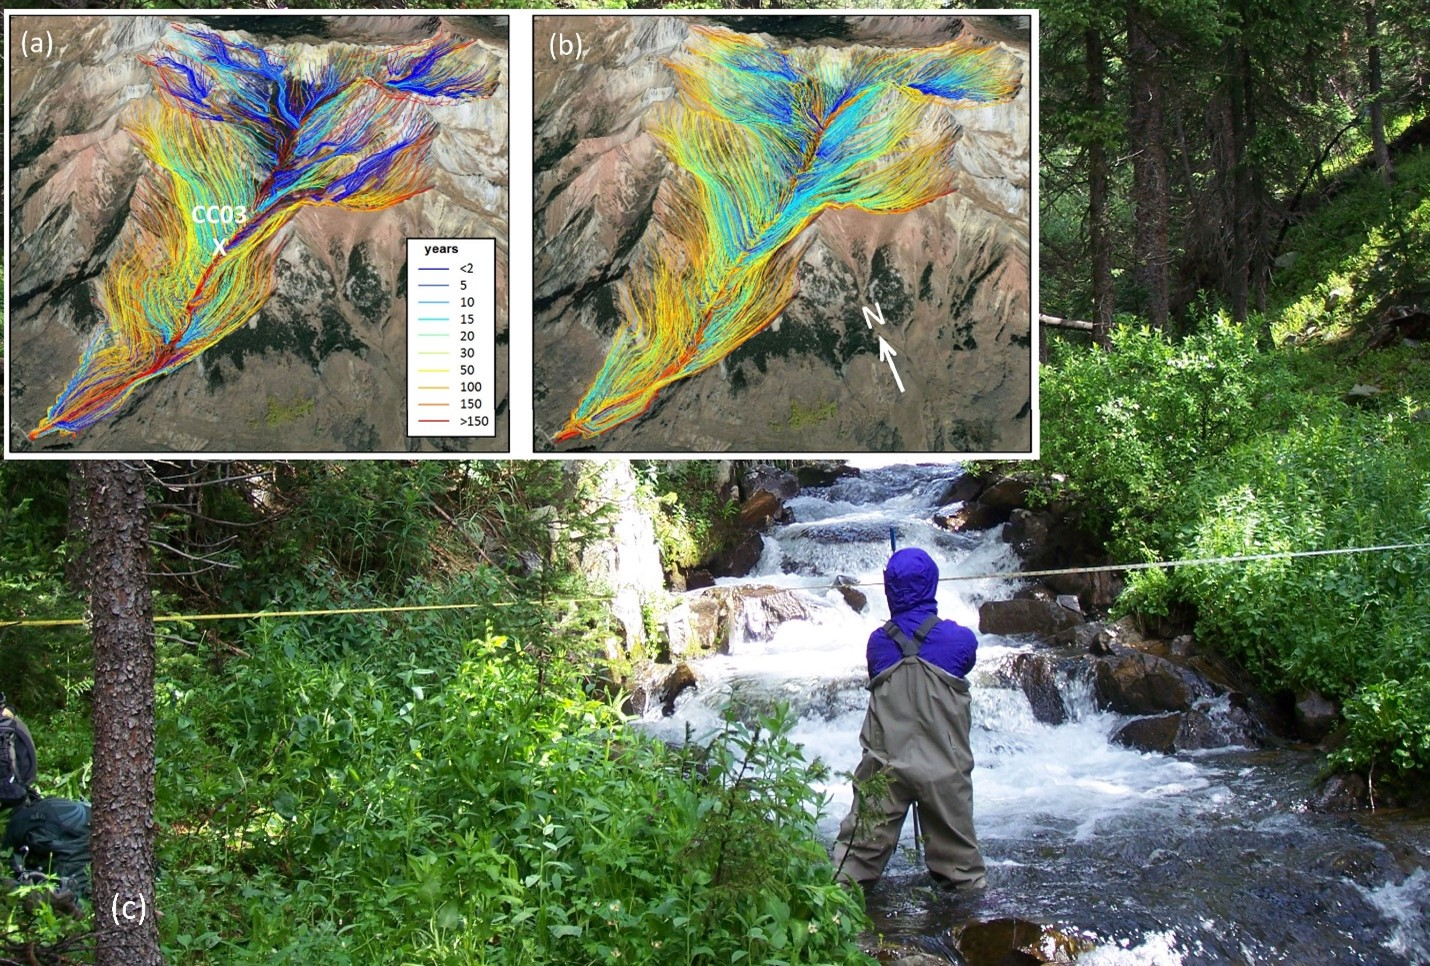 Groundwater flow paths in Copper Creek, Colorado